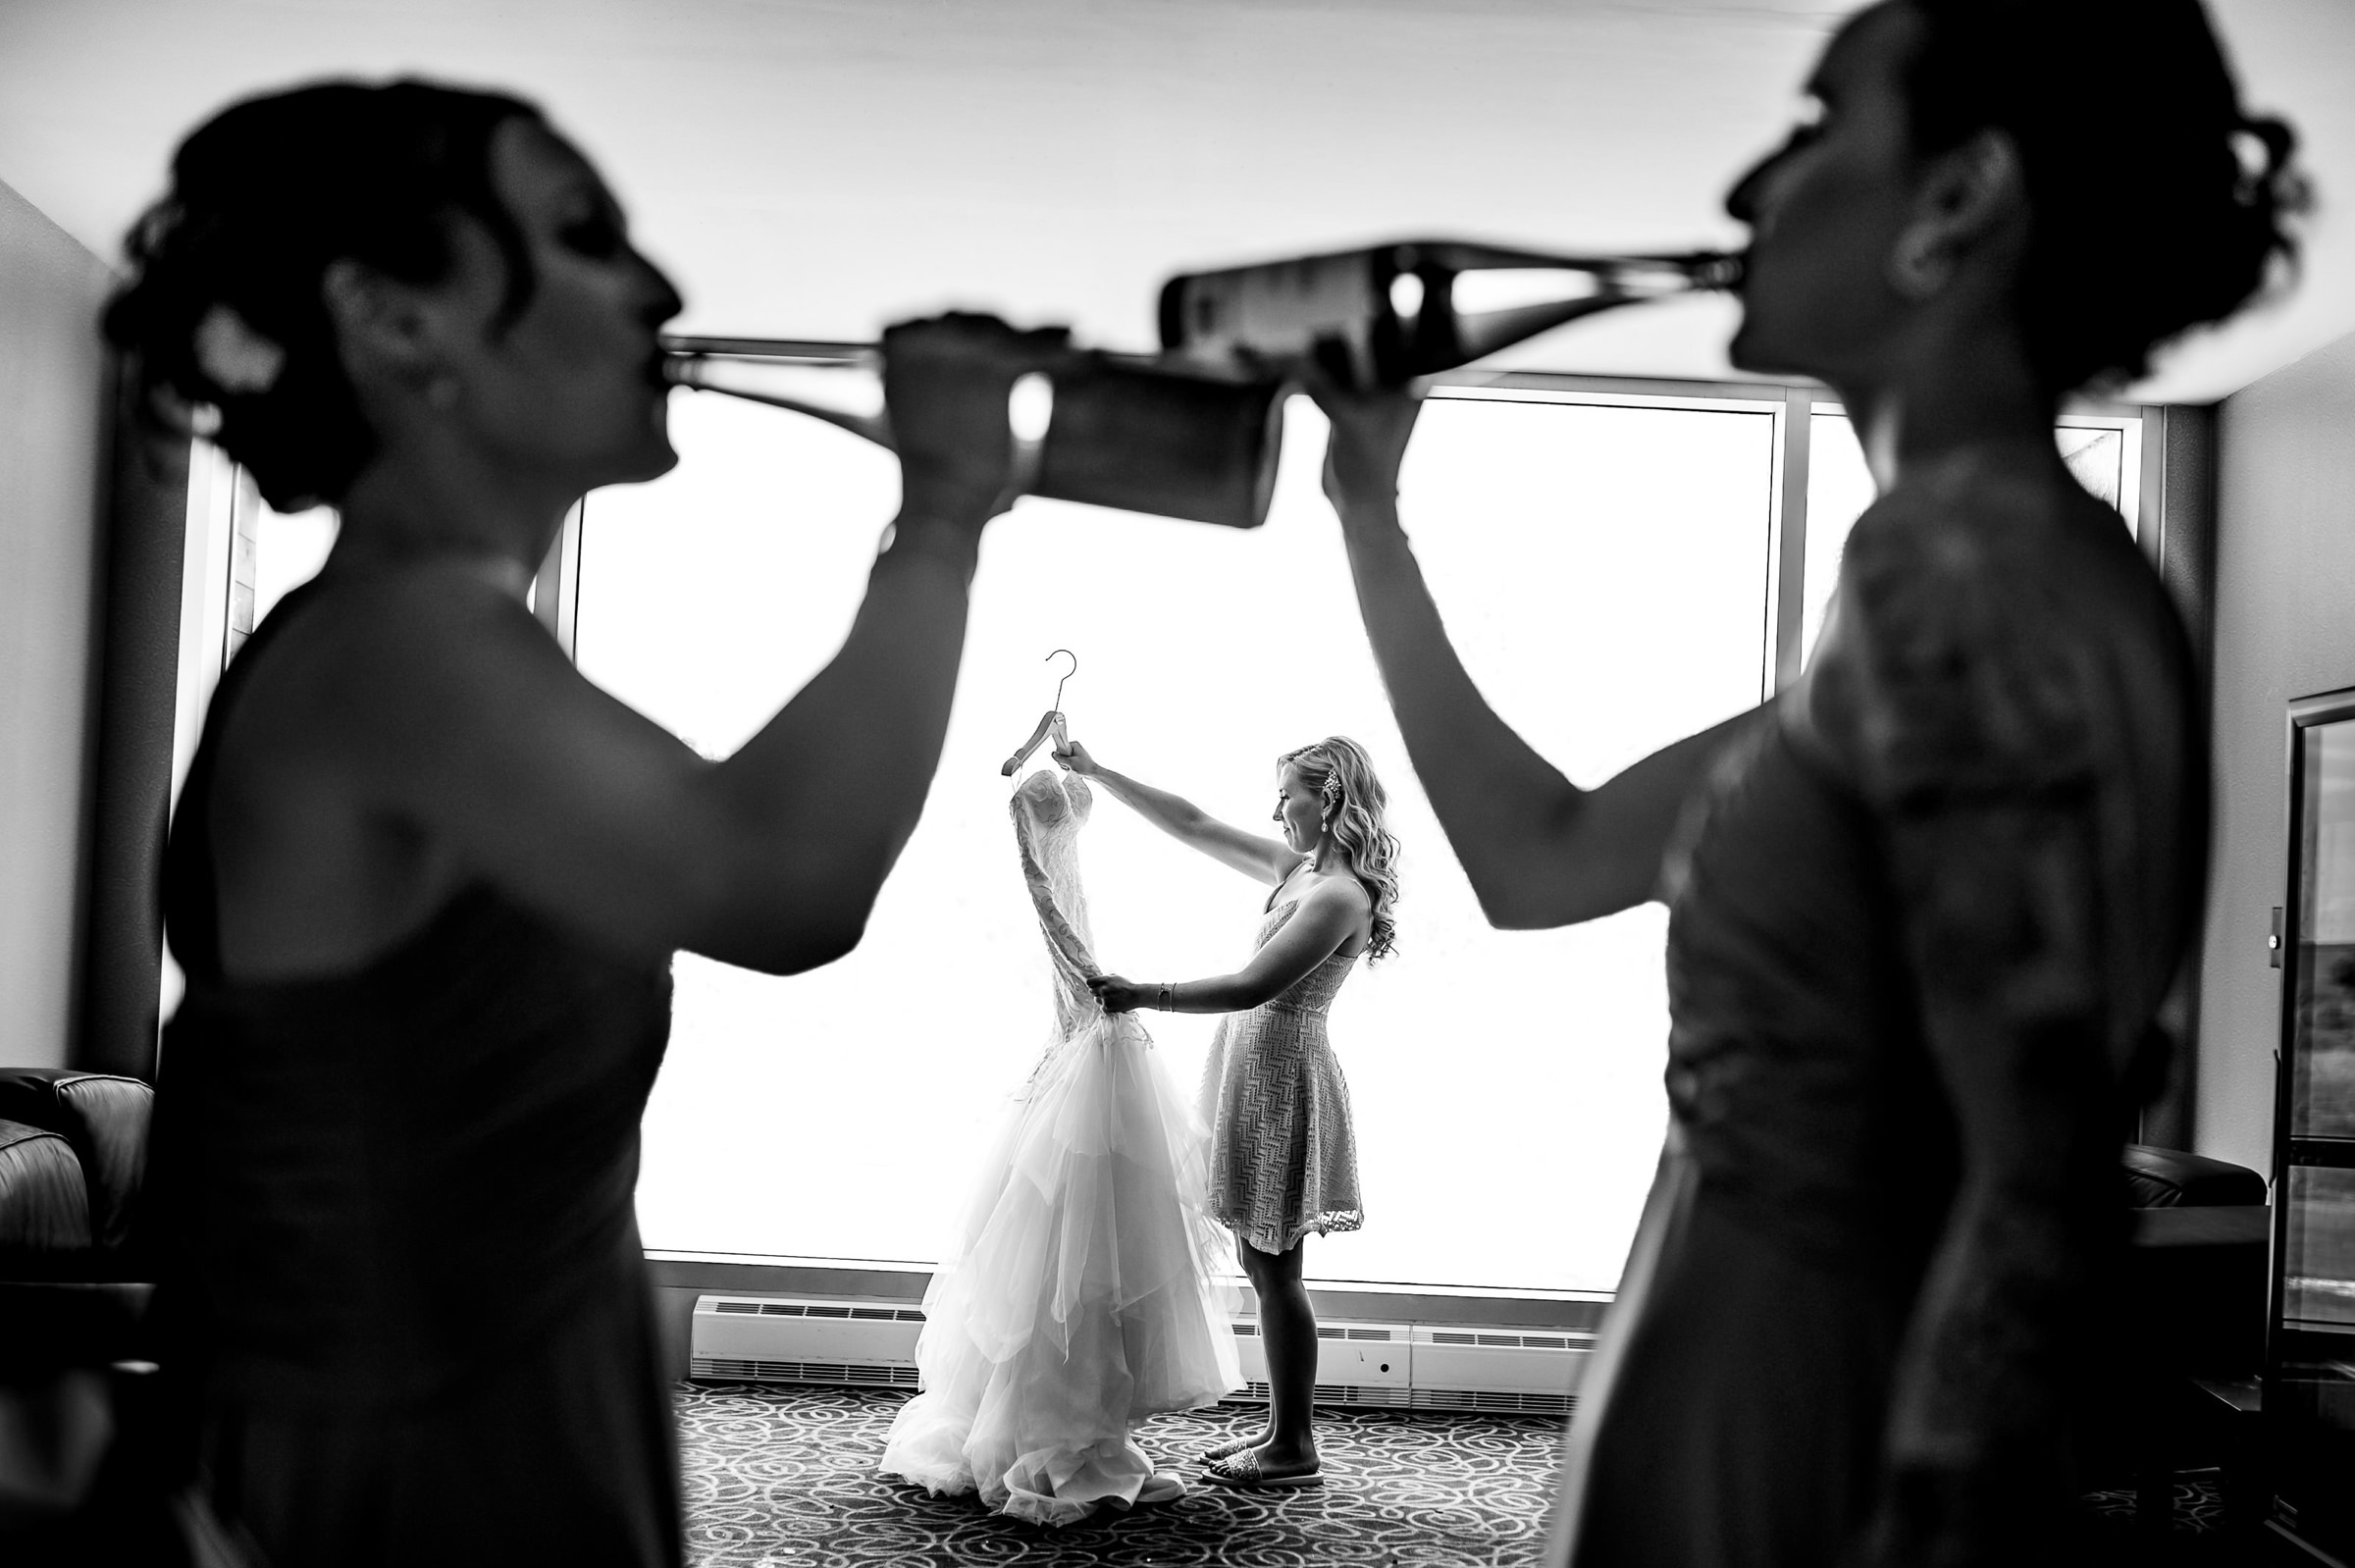 Creative composition of bride and reflected guest - photo by Moore Photography